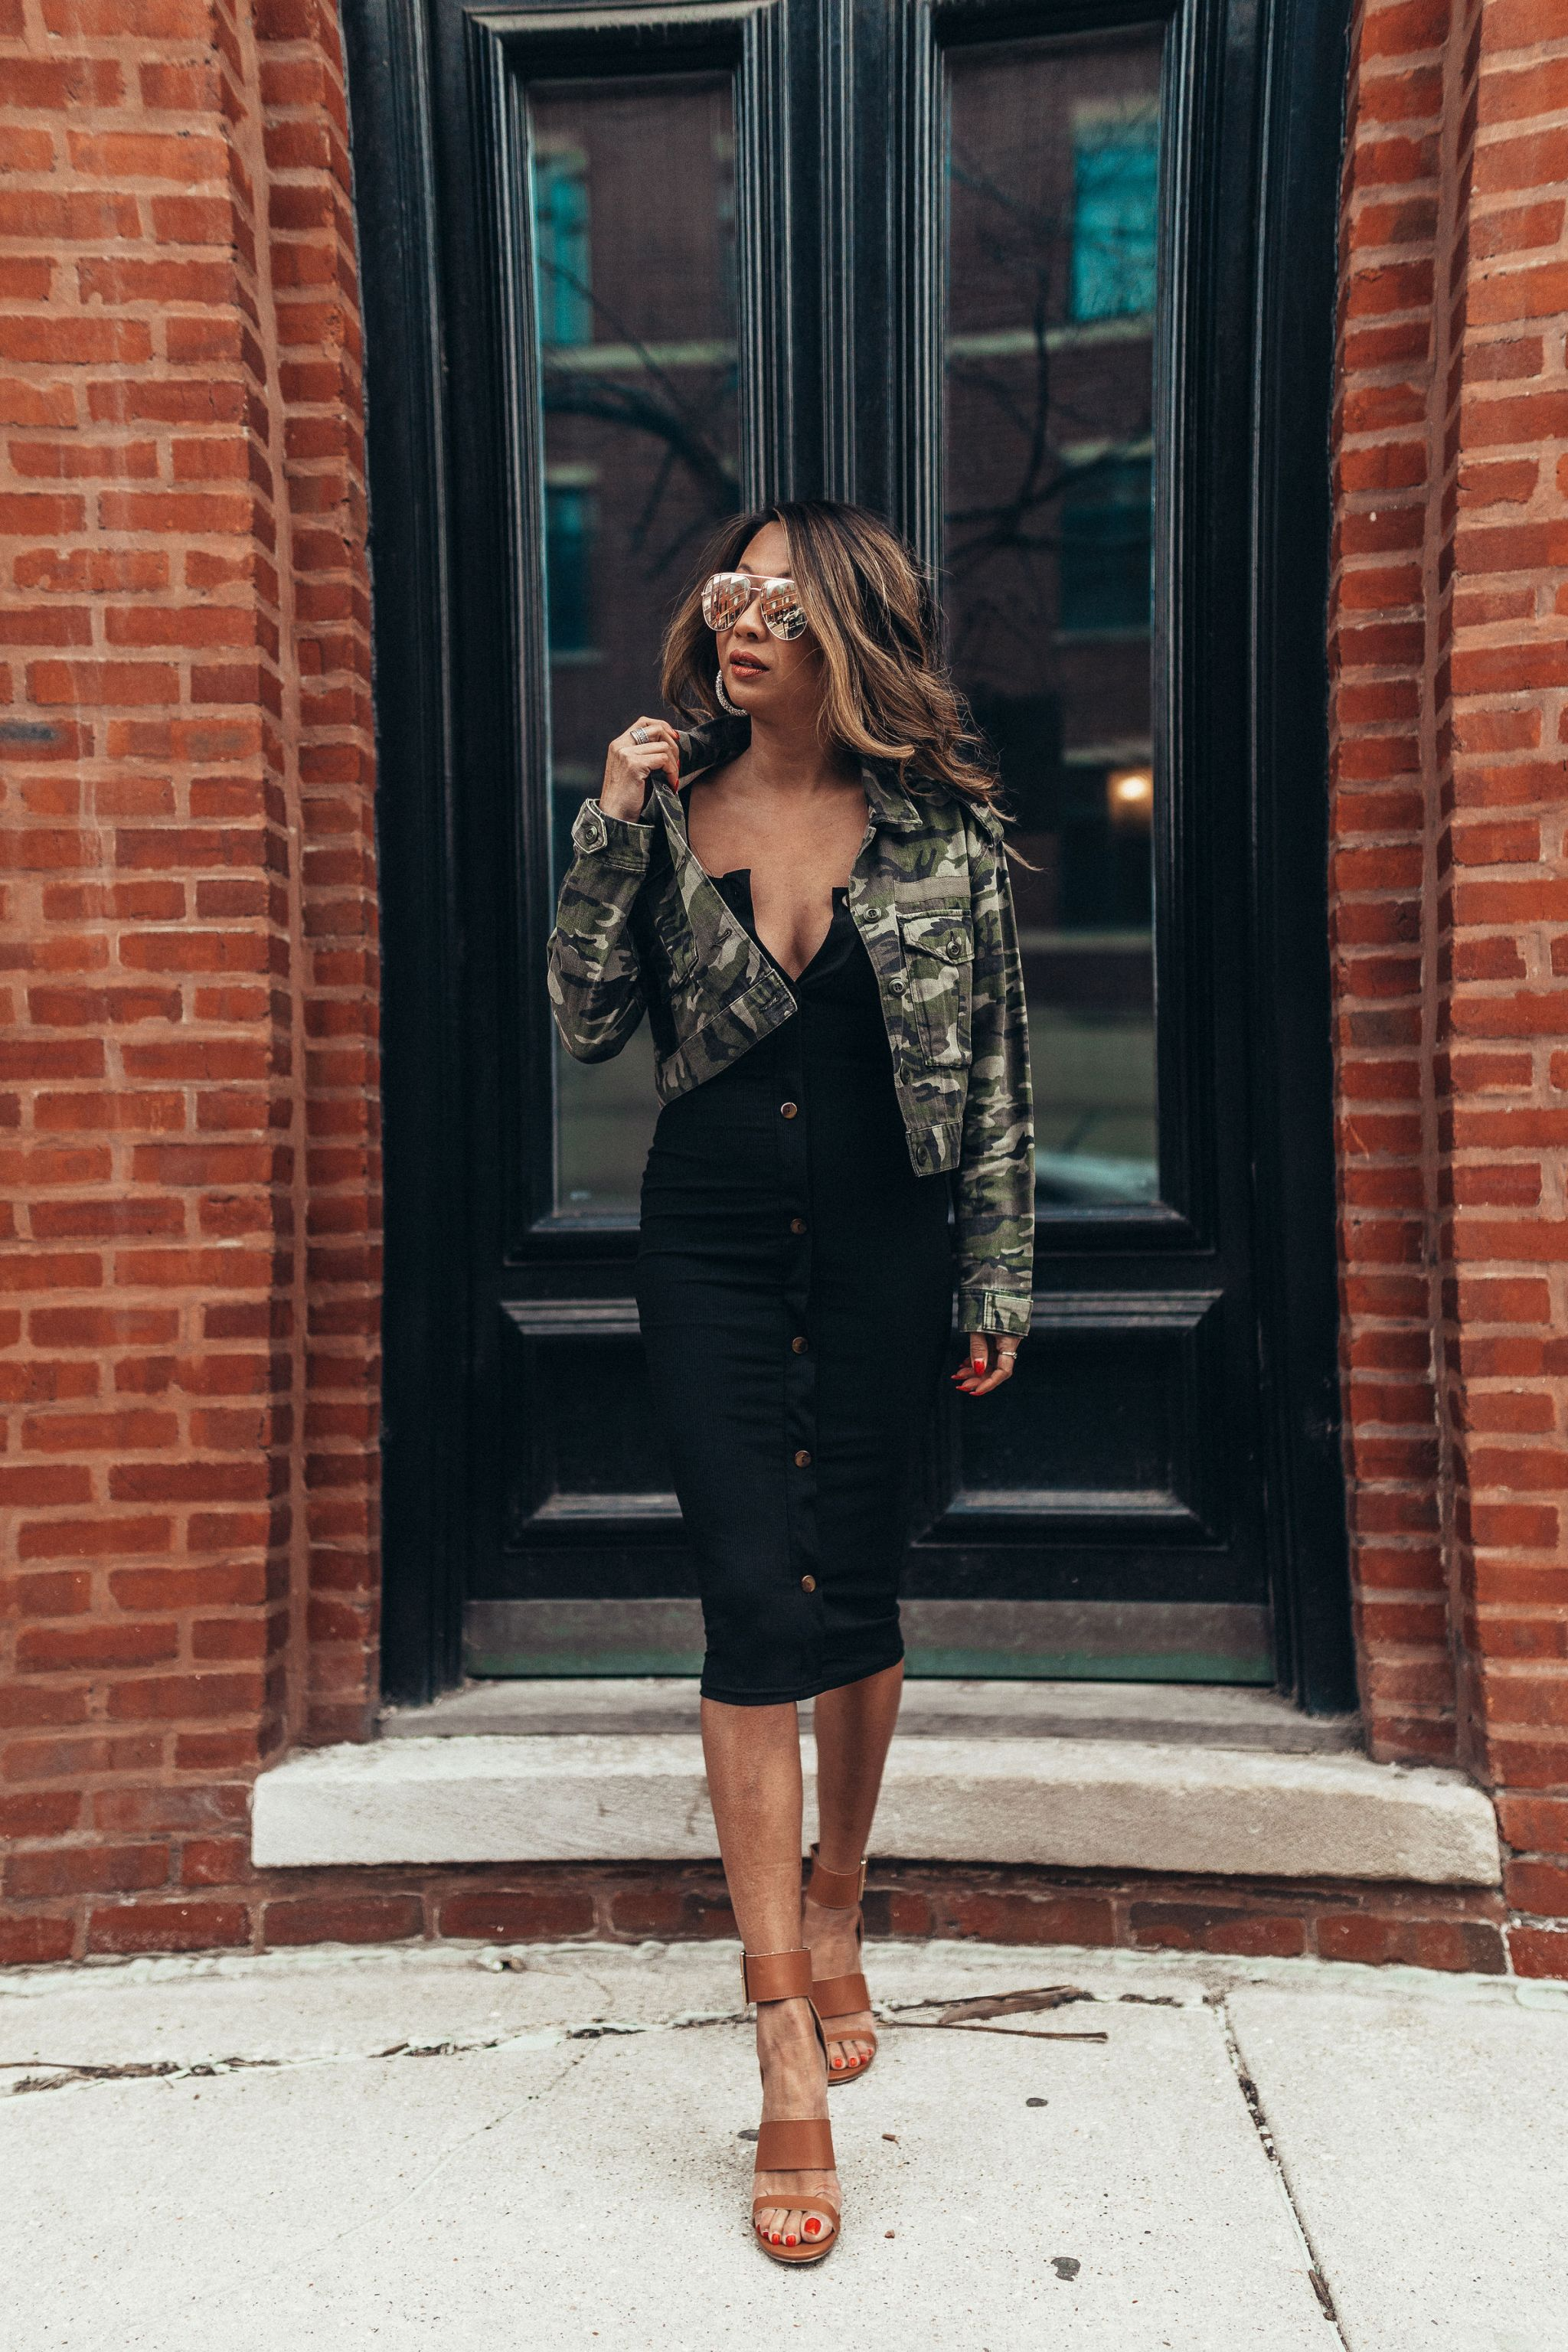 3 ways to style a little black dress, 1 dress 3 ways, how to style a black dress, how to dress up a black midi dress, outfit ideas, fashion blogger, style blogger, street style, how to style a dress multiple ways, camo jacket and black dress, how to style a camo jacket